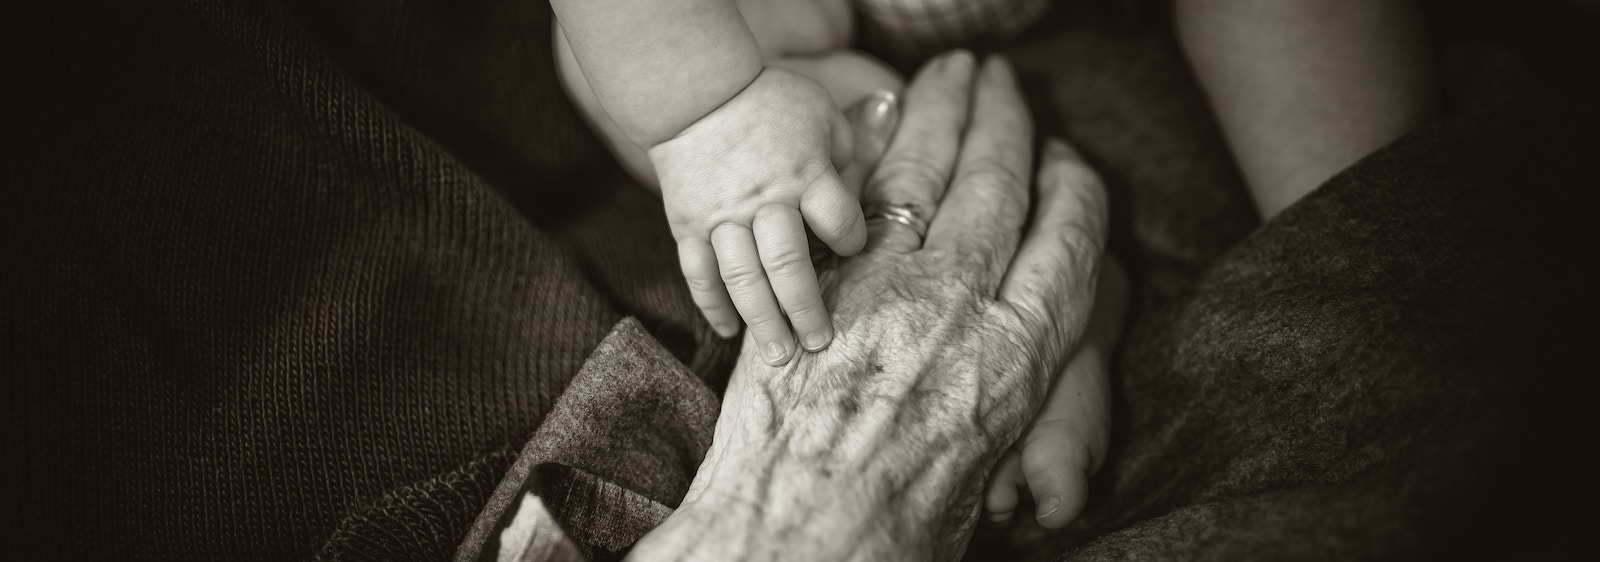 Older person's hand holding the hand and foot of a baby.